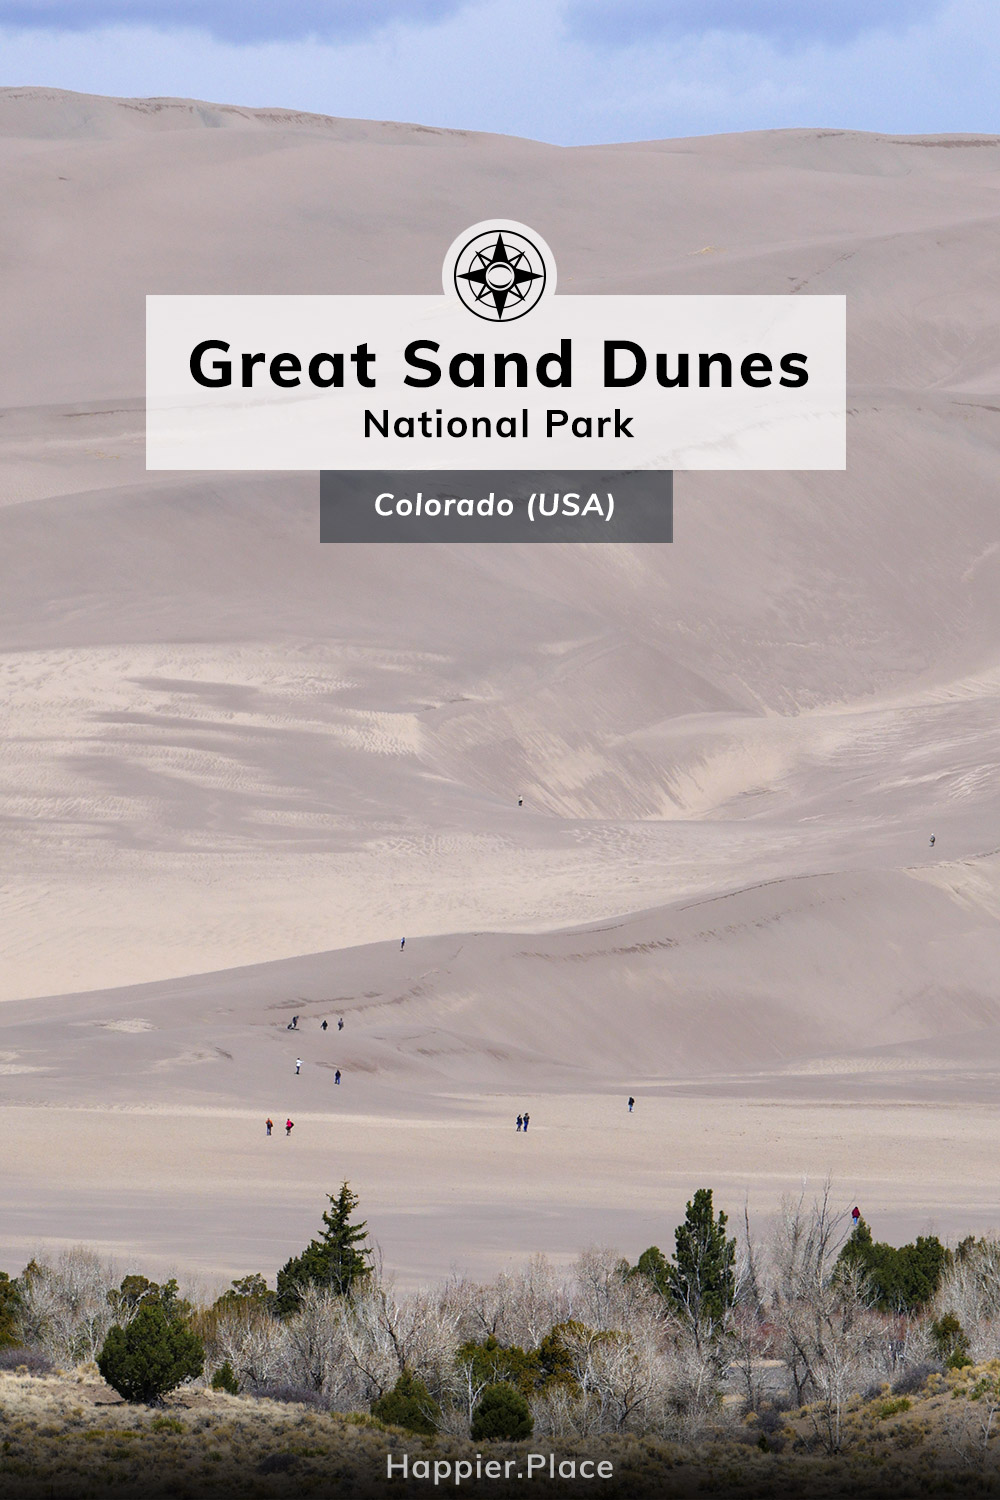 People hiking, sledding, snowboarding the Great Sand Dunes National Park Colorado Happier Place